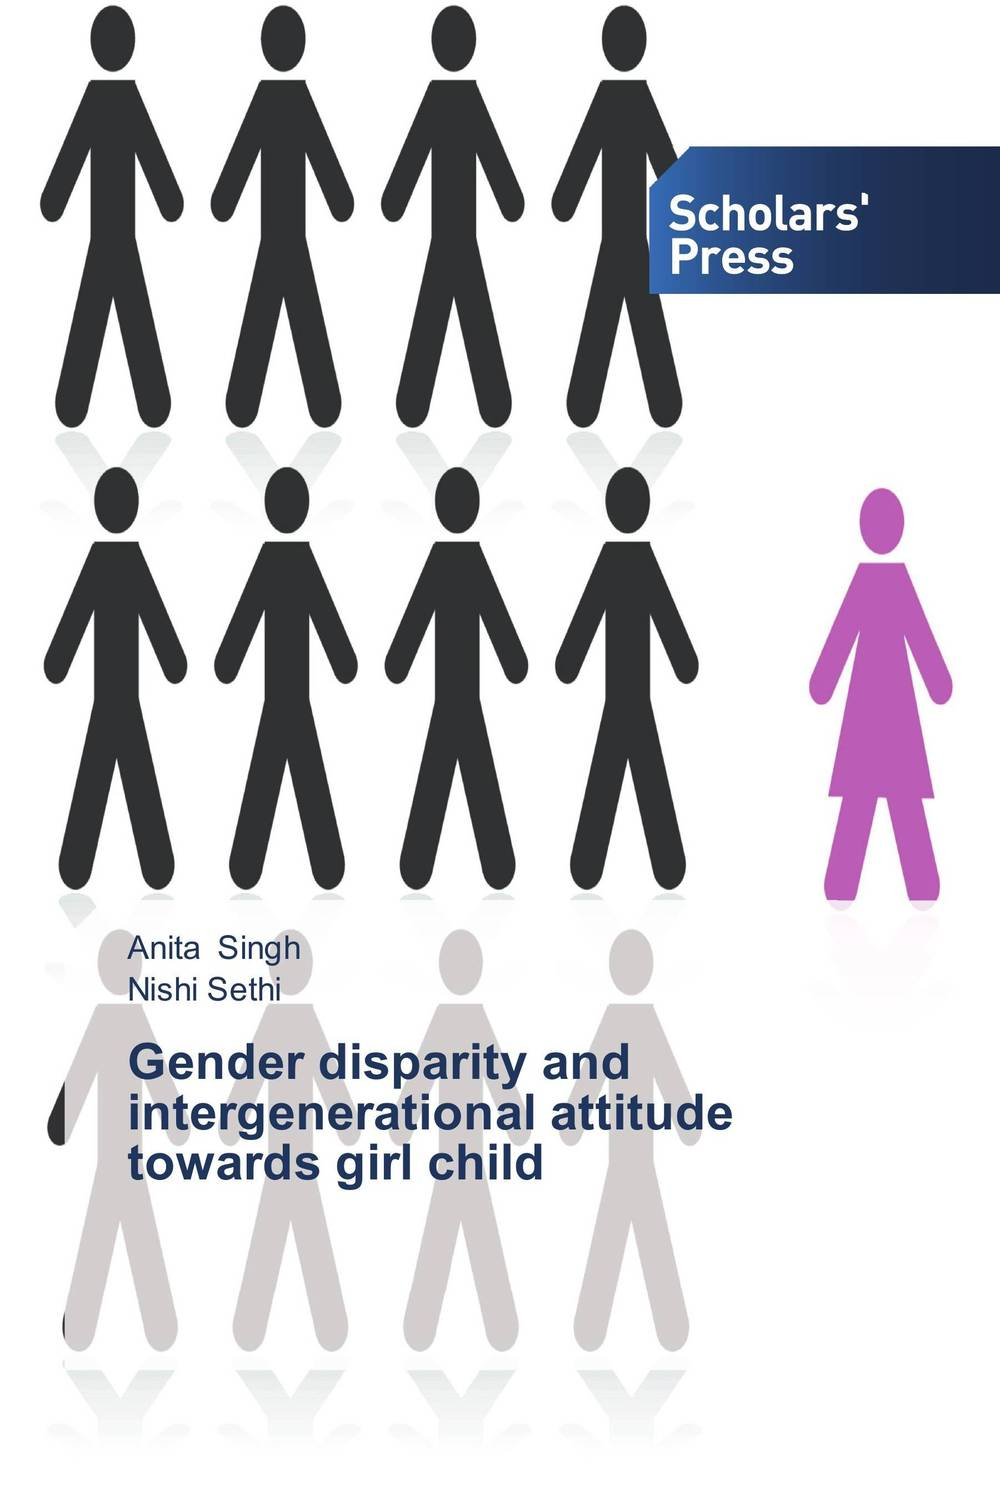 Gender disparity and intergenerational attitude towards girl child student attitude towards web based learning resources